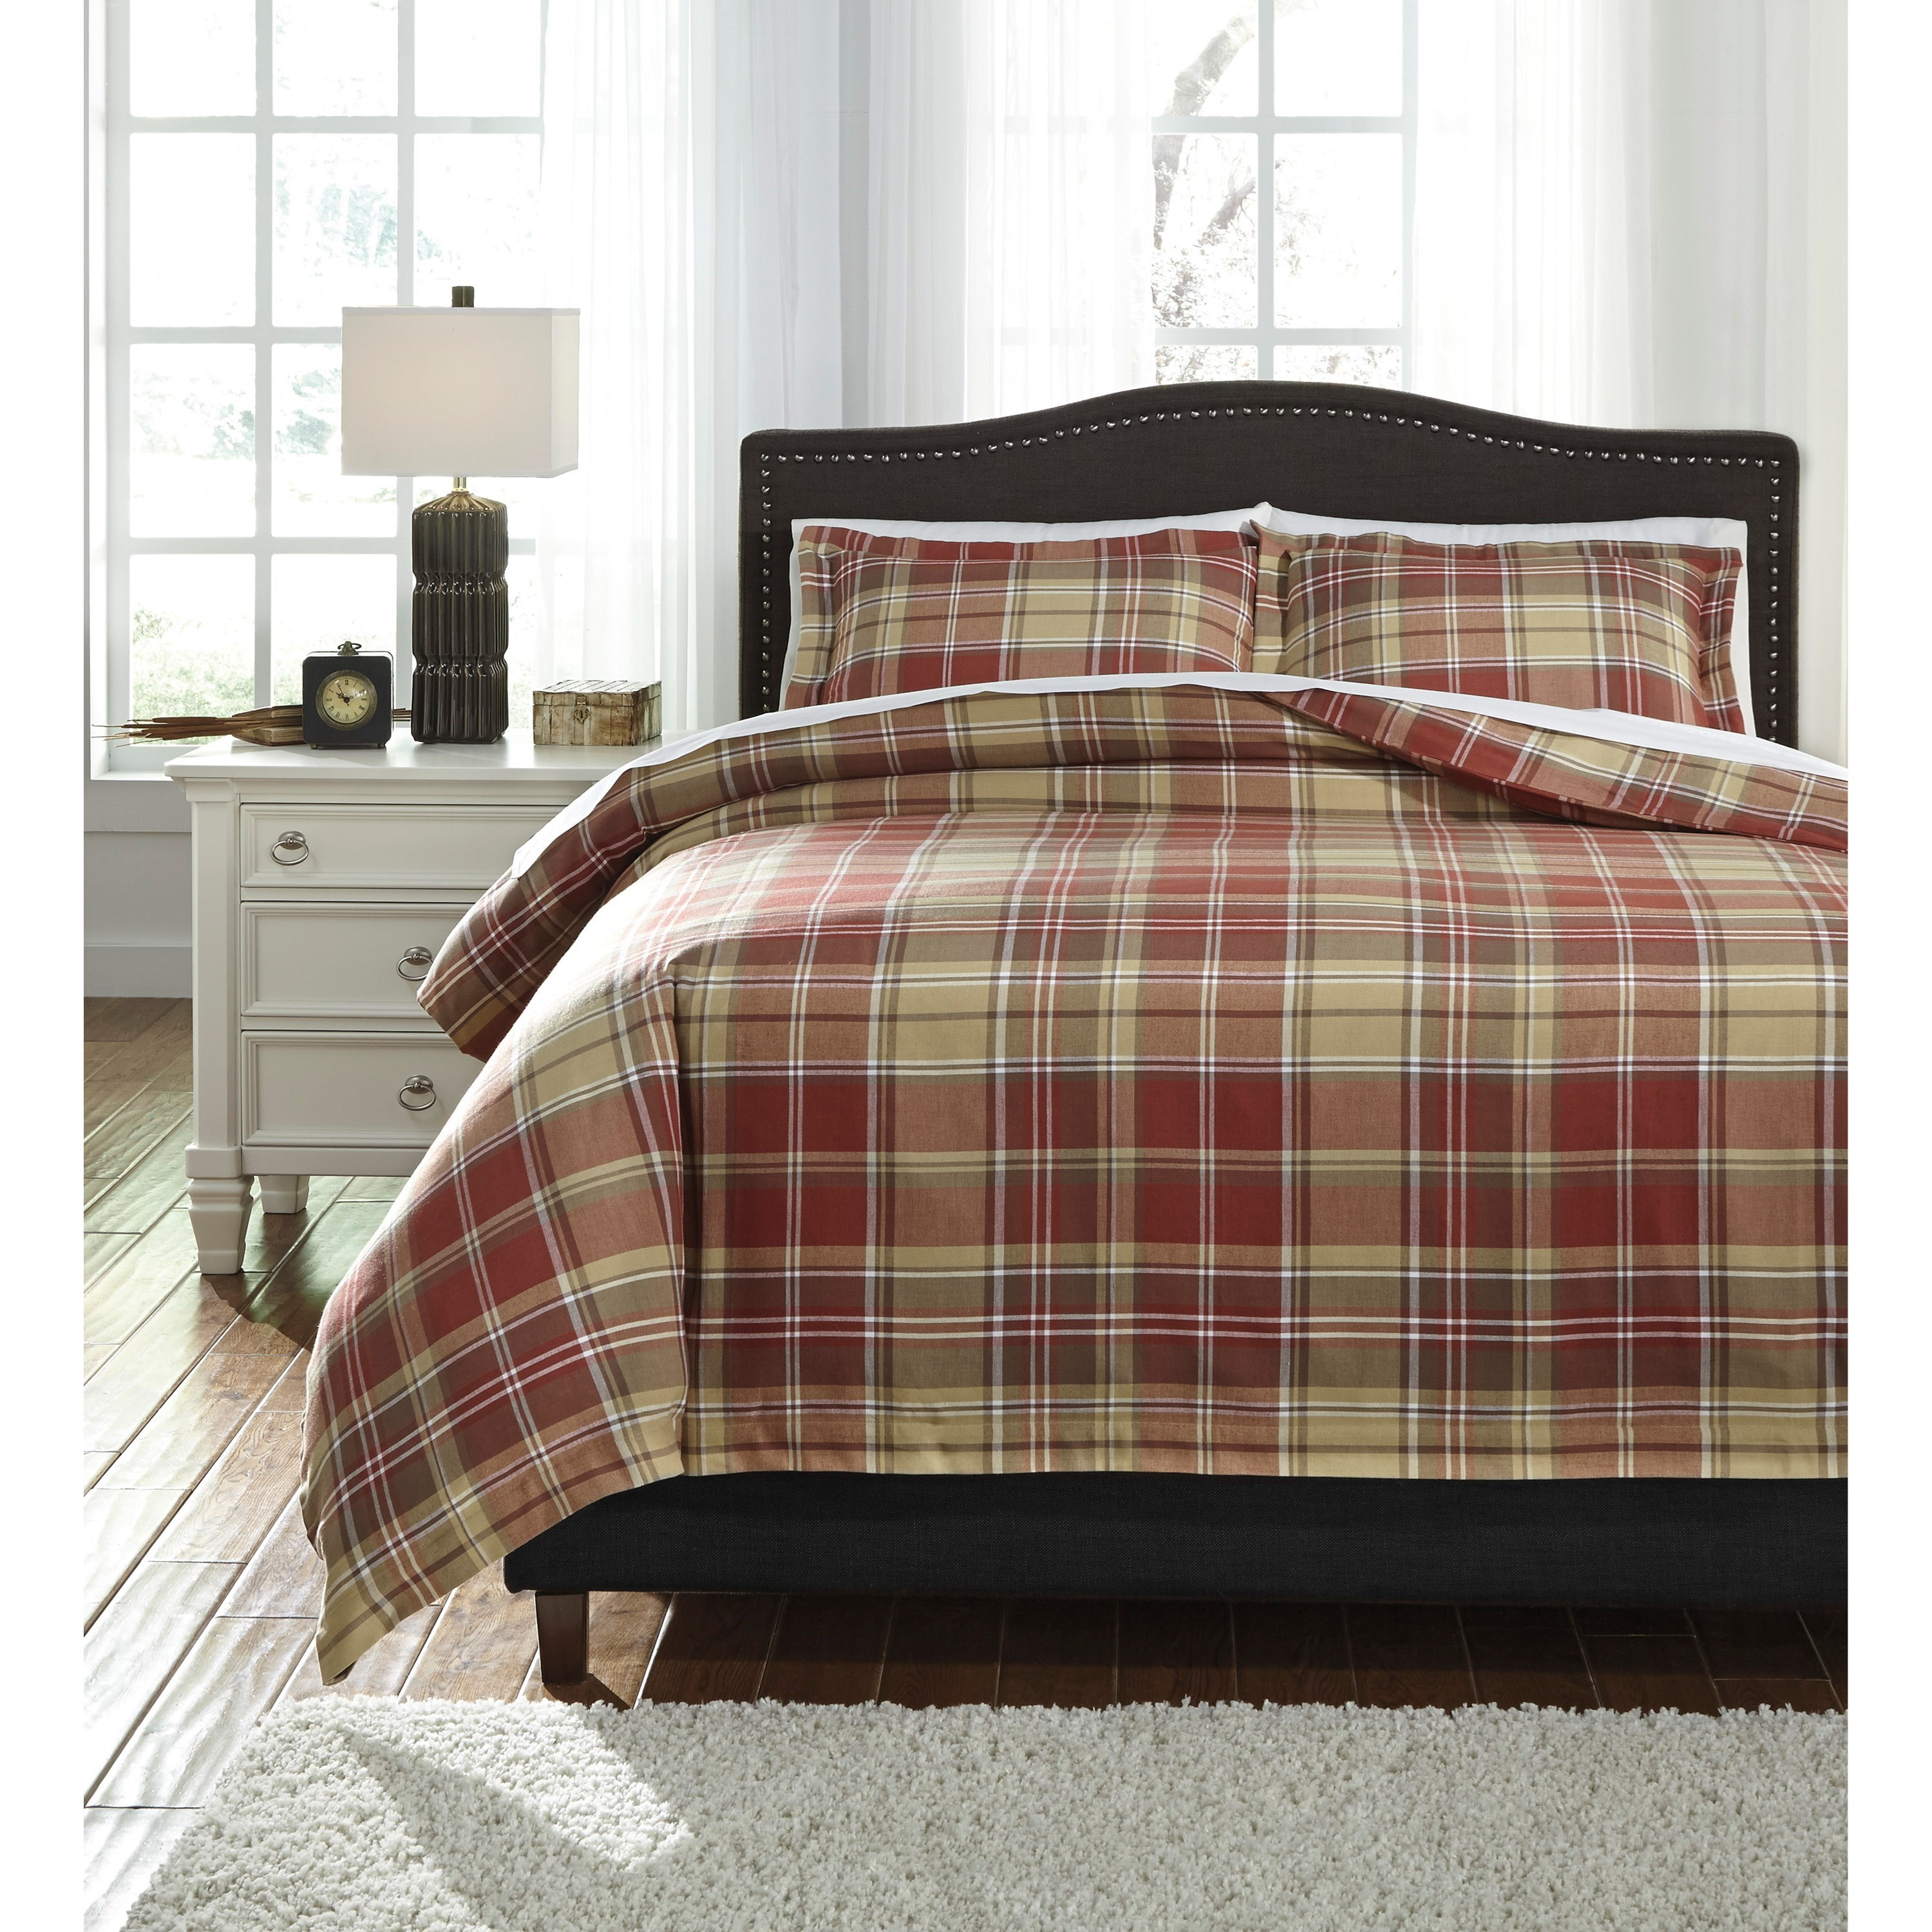 Bedding Sets Queen Danail Red/Gold/Green Duvet Cover Set by Signature Design by Ashley at Lapeer Furniture & Mattress Center